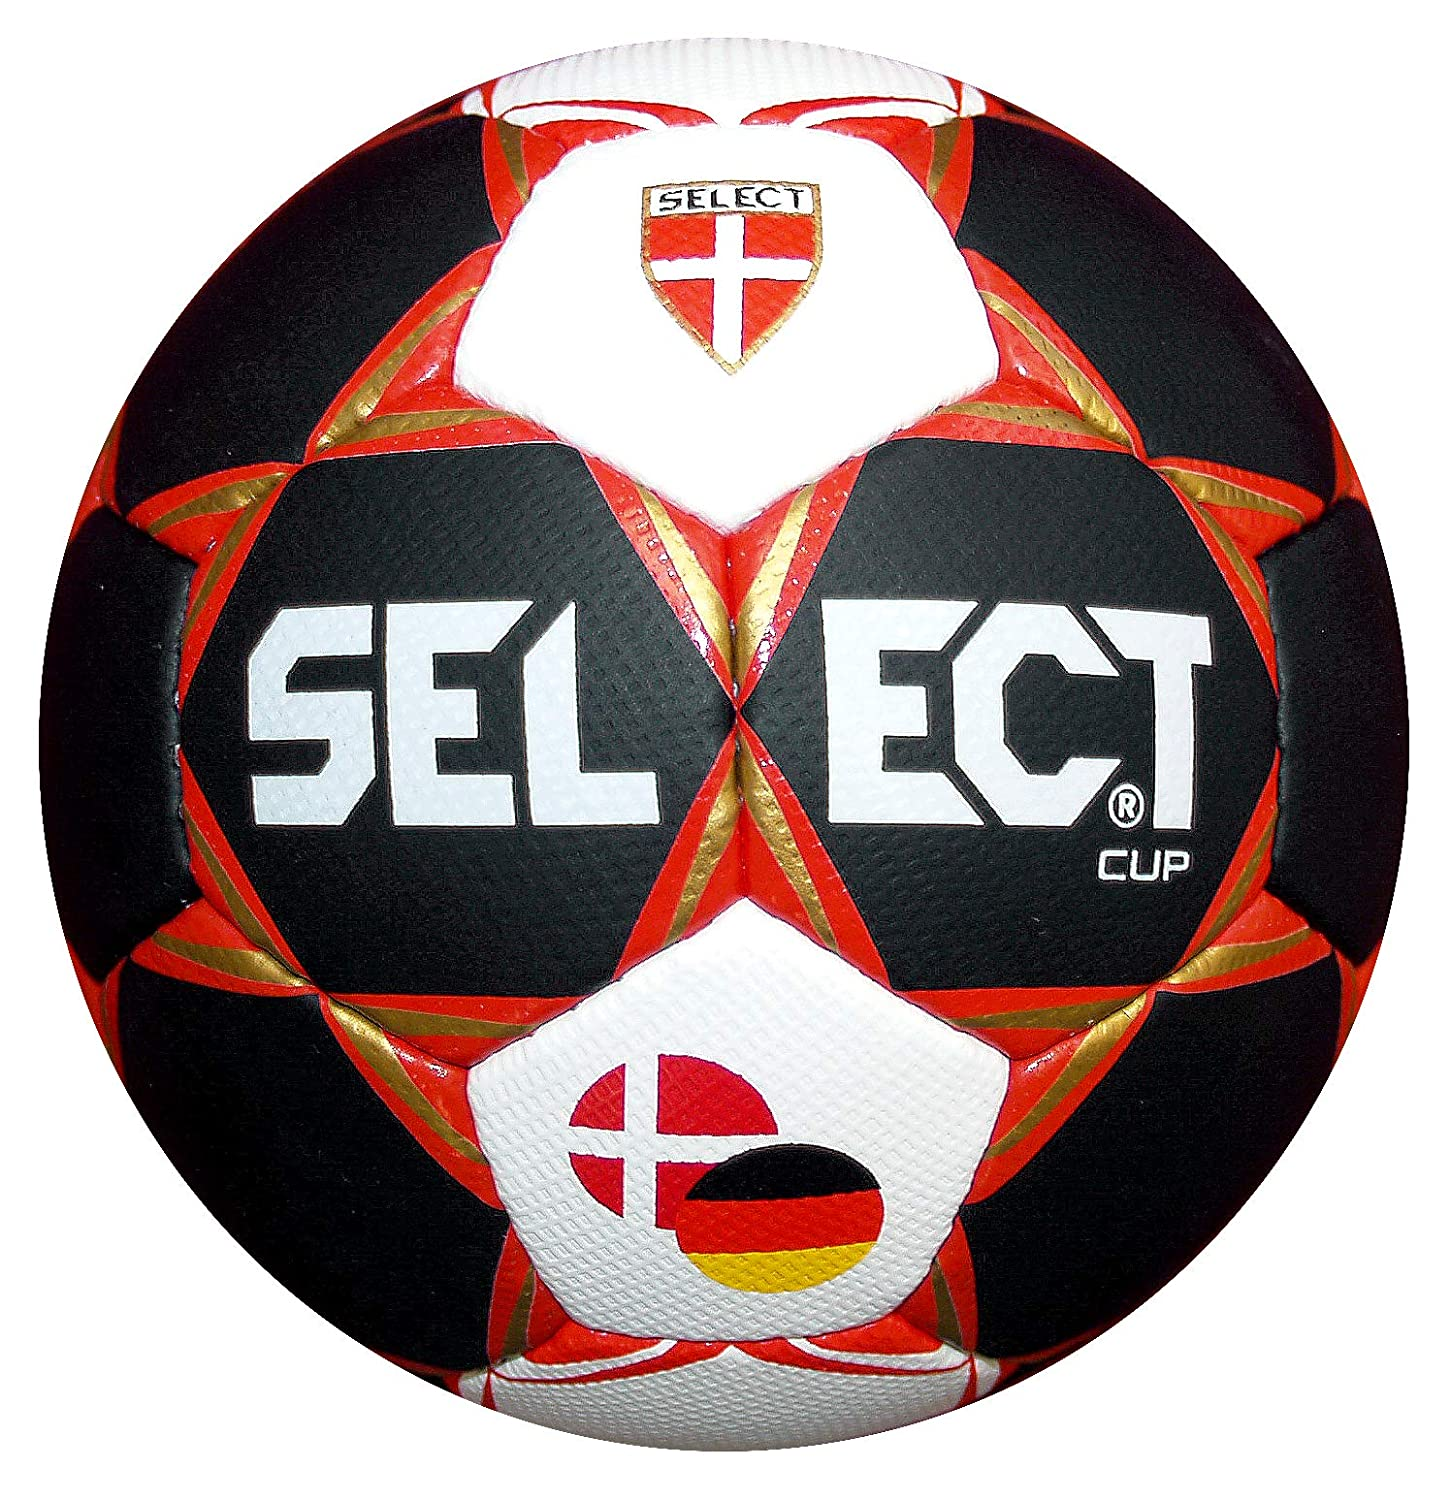 Select Sport SMU World Cup 2019 (in Ger + DK) – Blanc/SW/ge, Taille 3